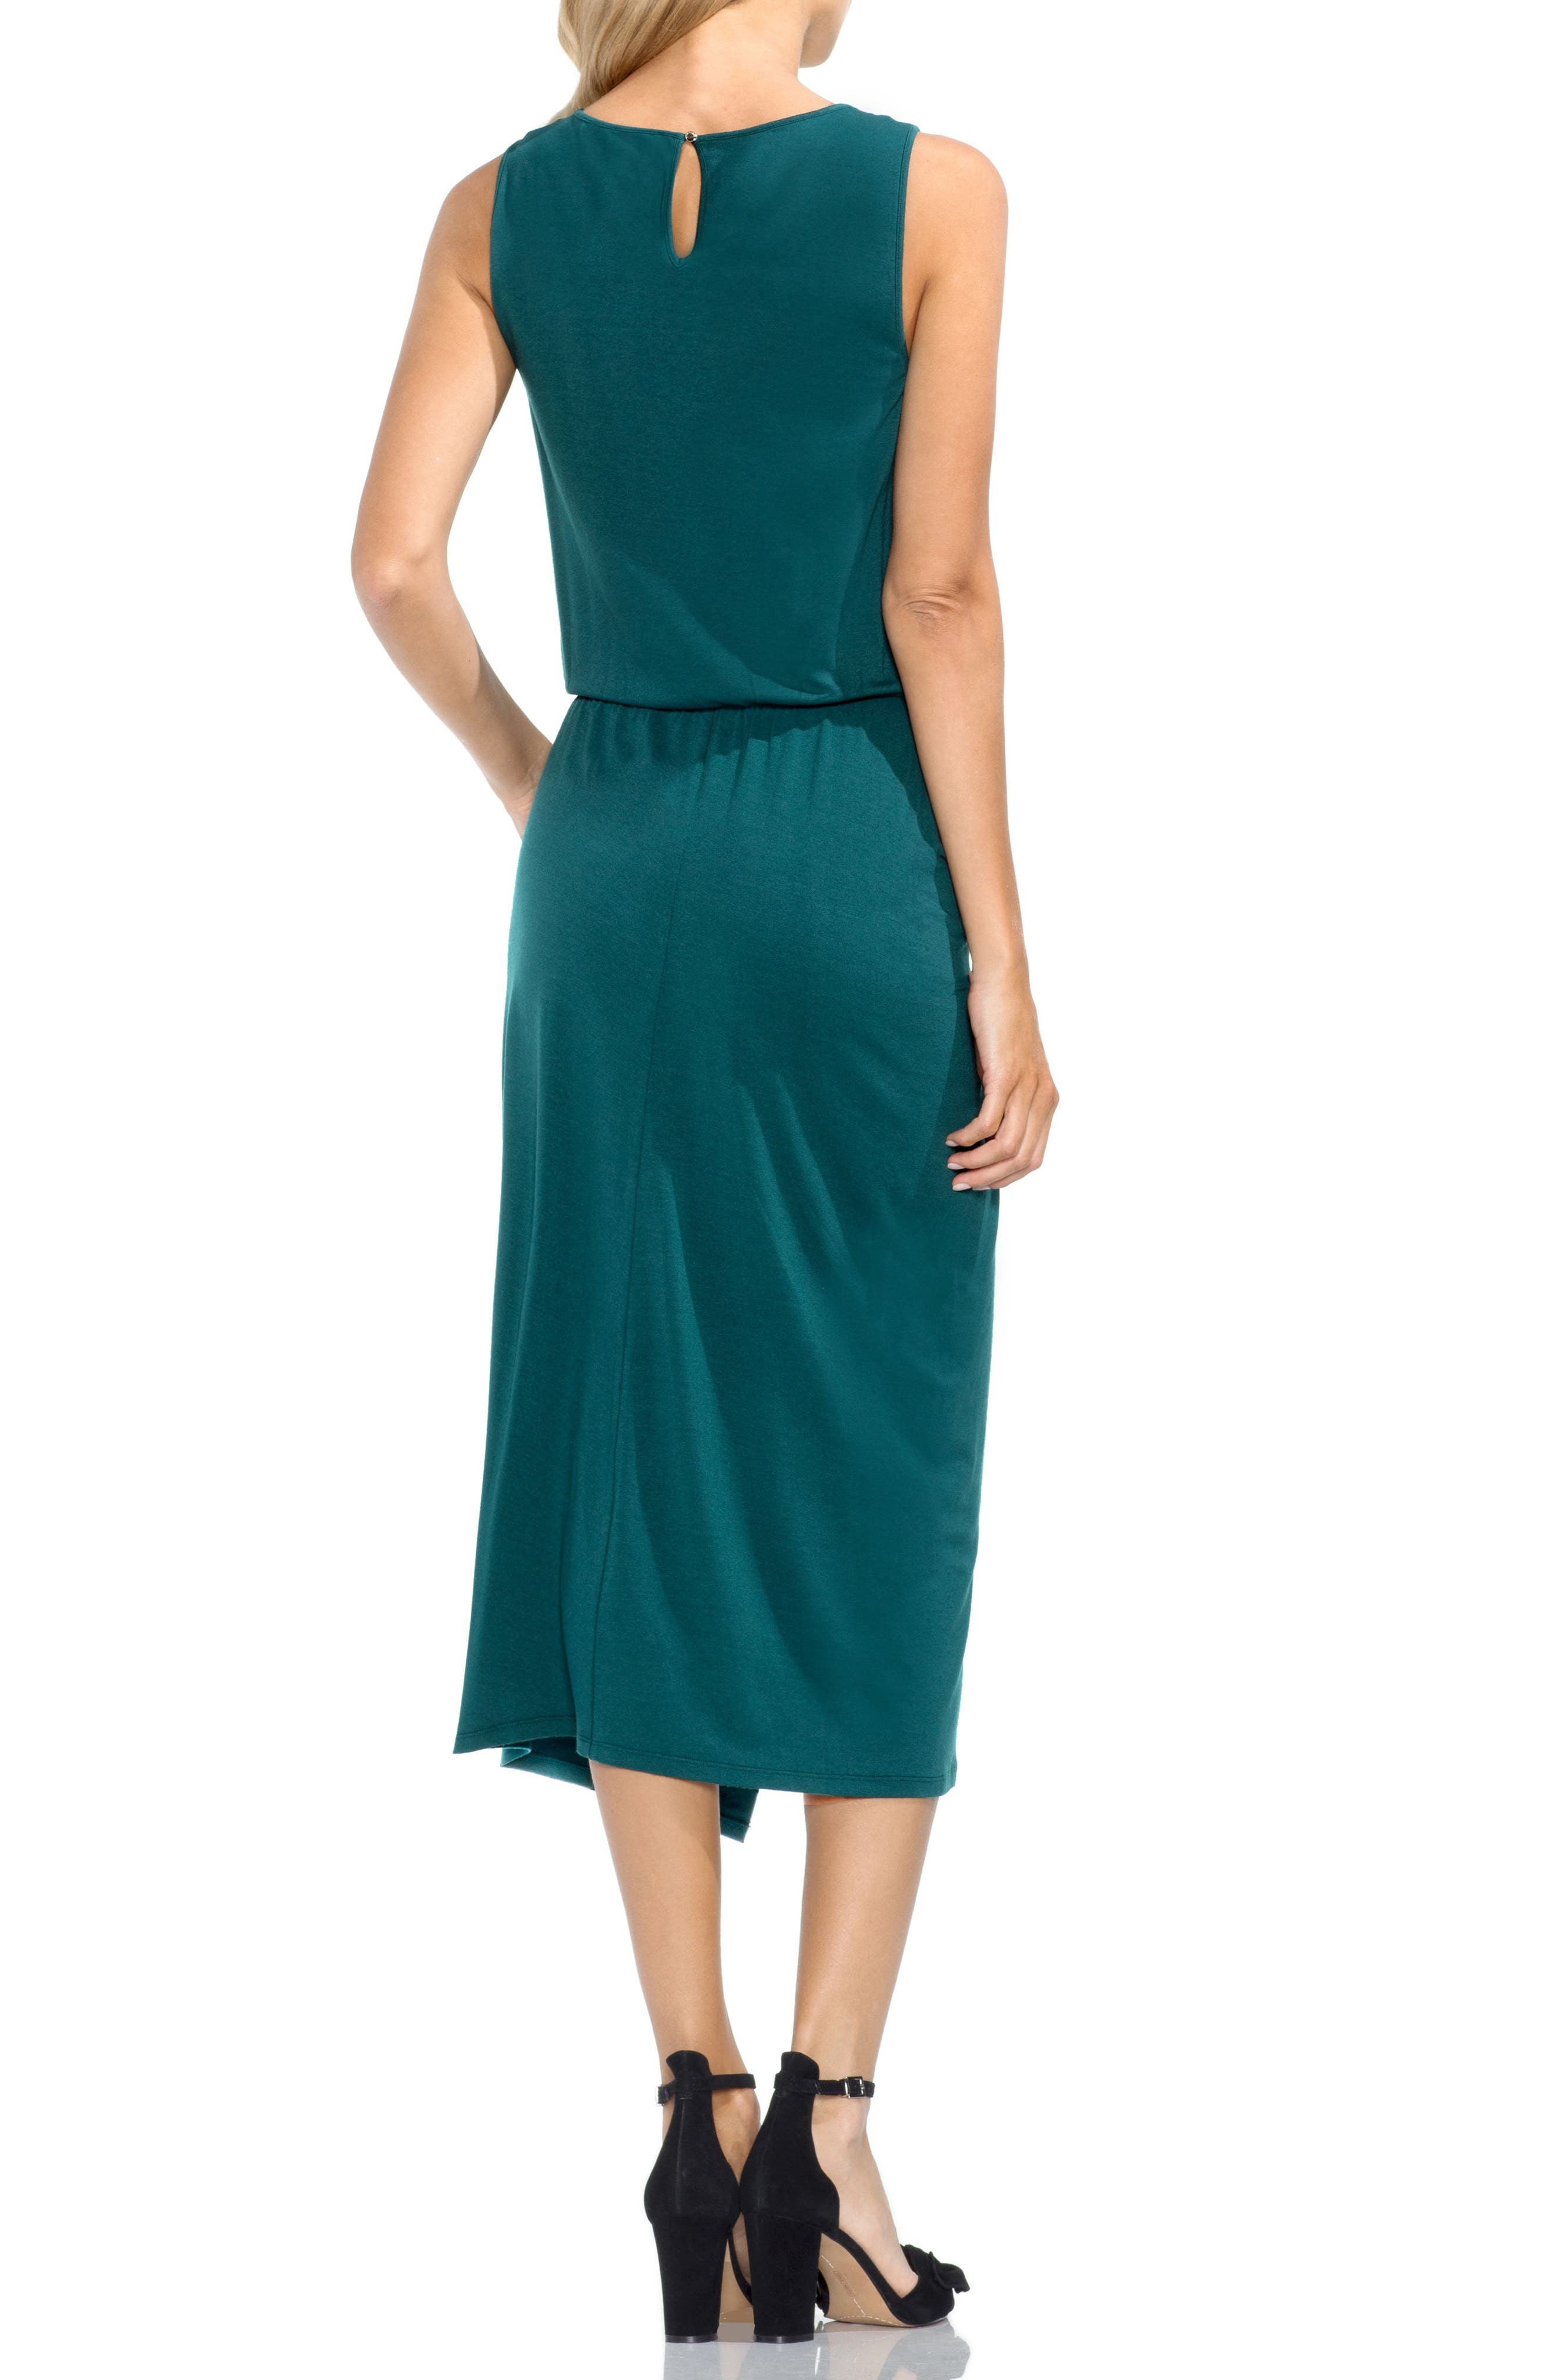 Ruched Midi Dress,                             Alternate thumbnail 2, color,                             Verdant Green